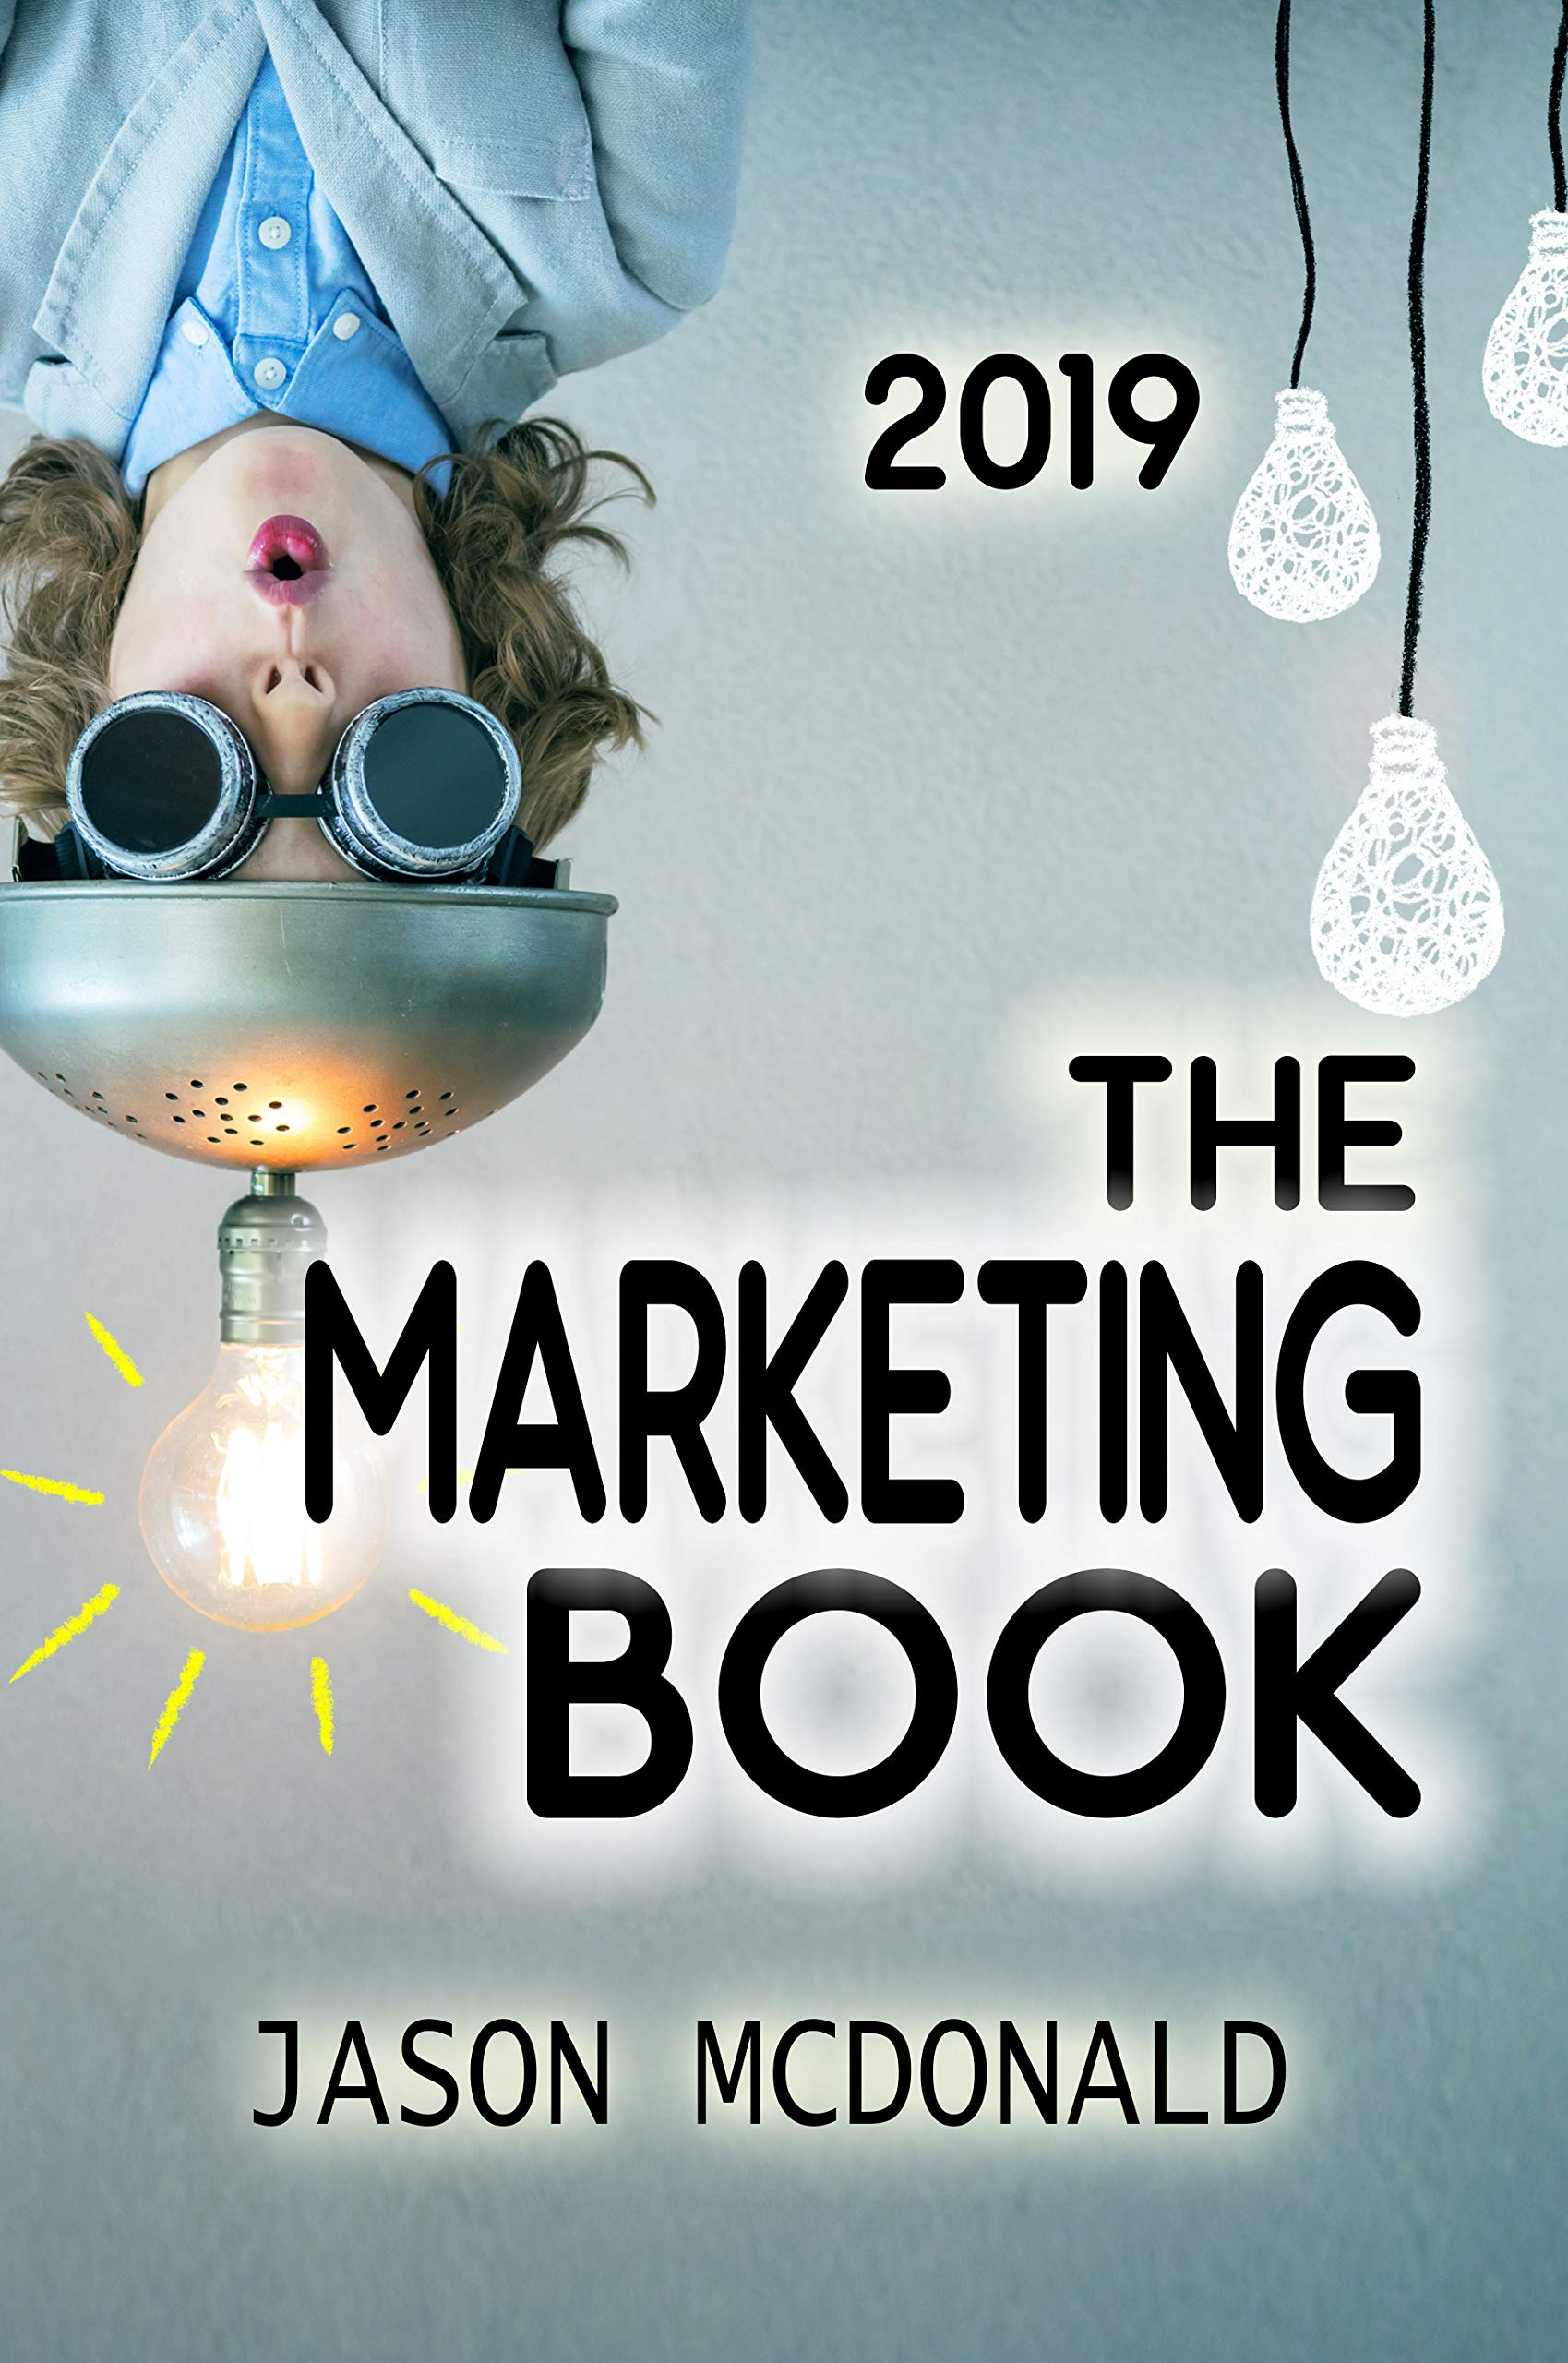 The Marketing Book  A Marketing Plan For Your Business Made Easy Via Think   Do   Measure  2019 Edition   English Edition